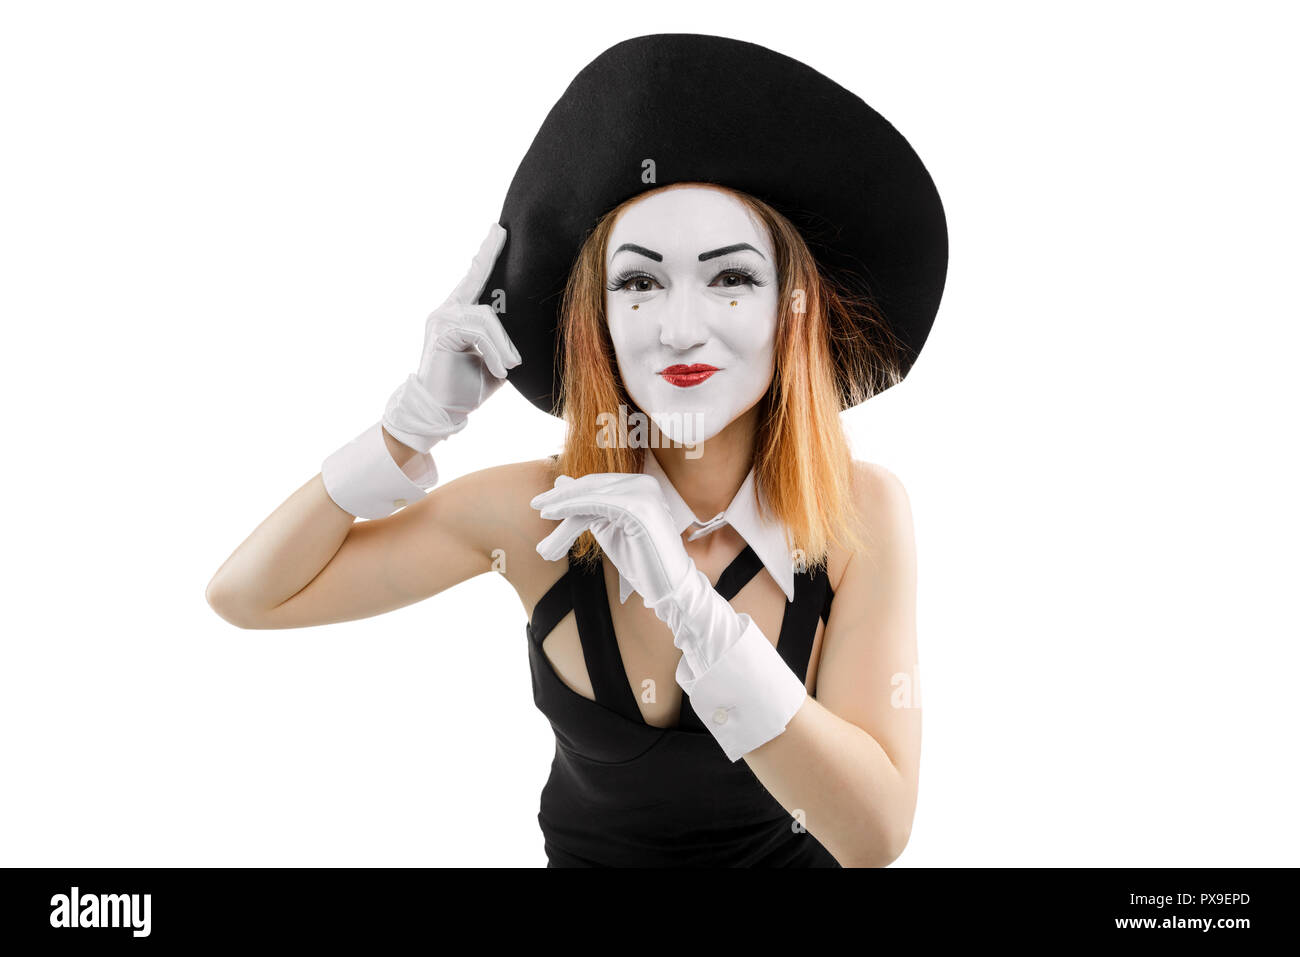 Female mime posing before mirror - Stock Image